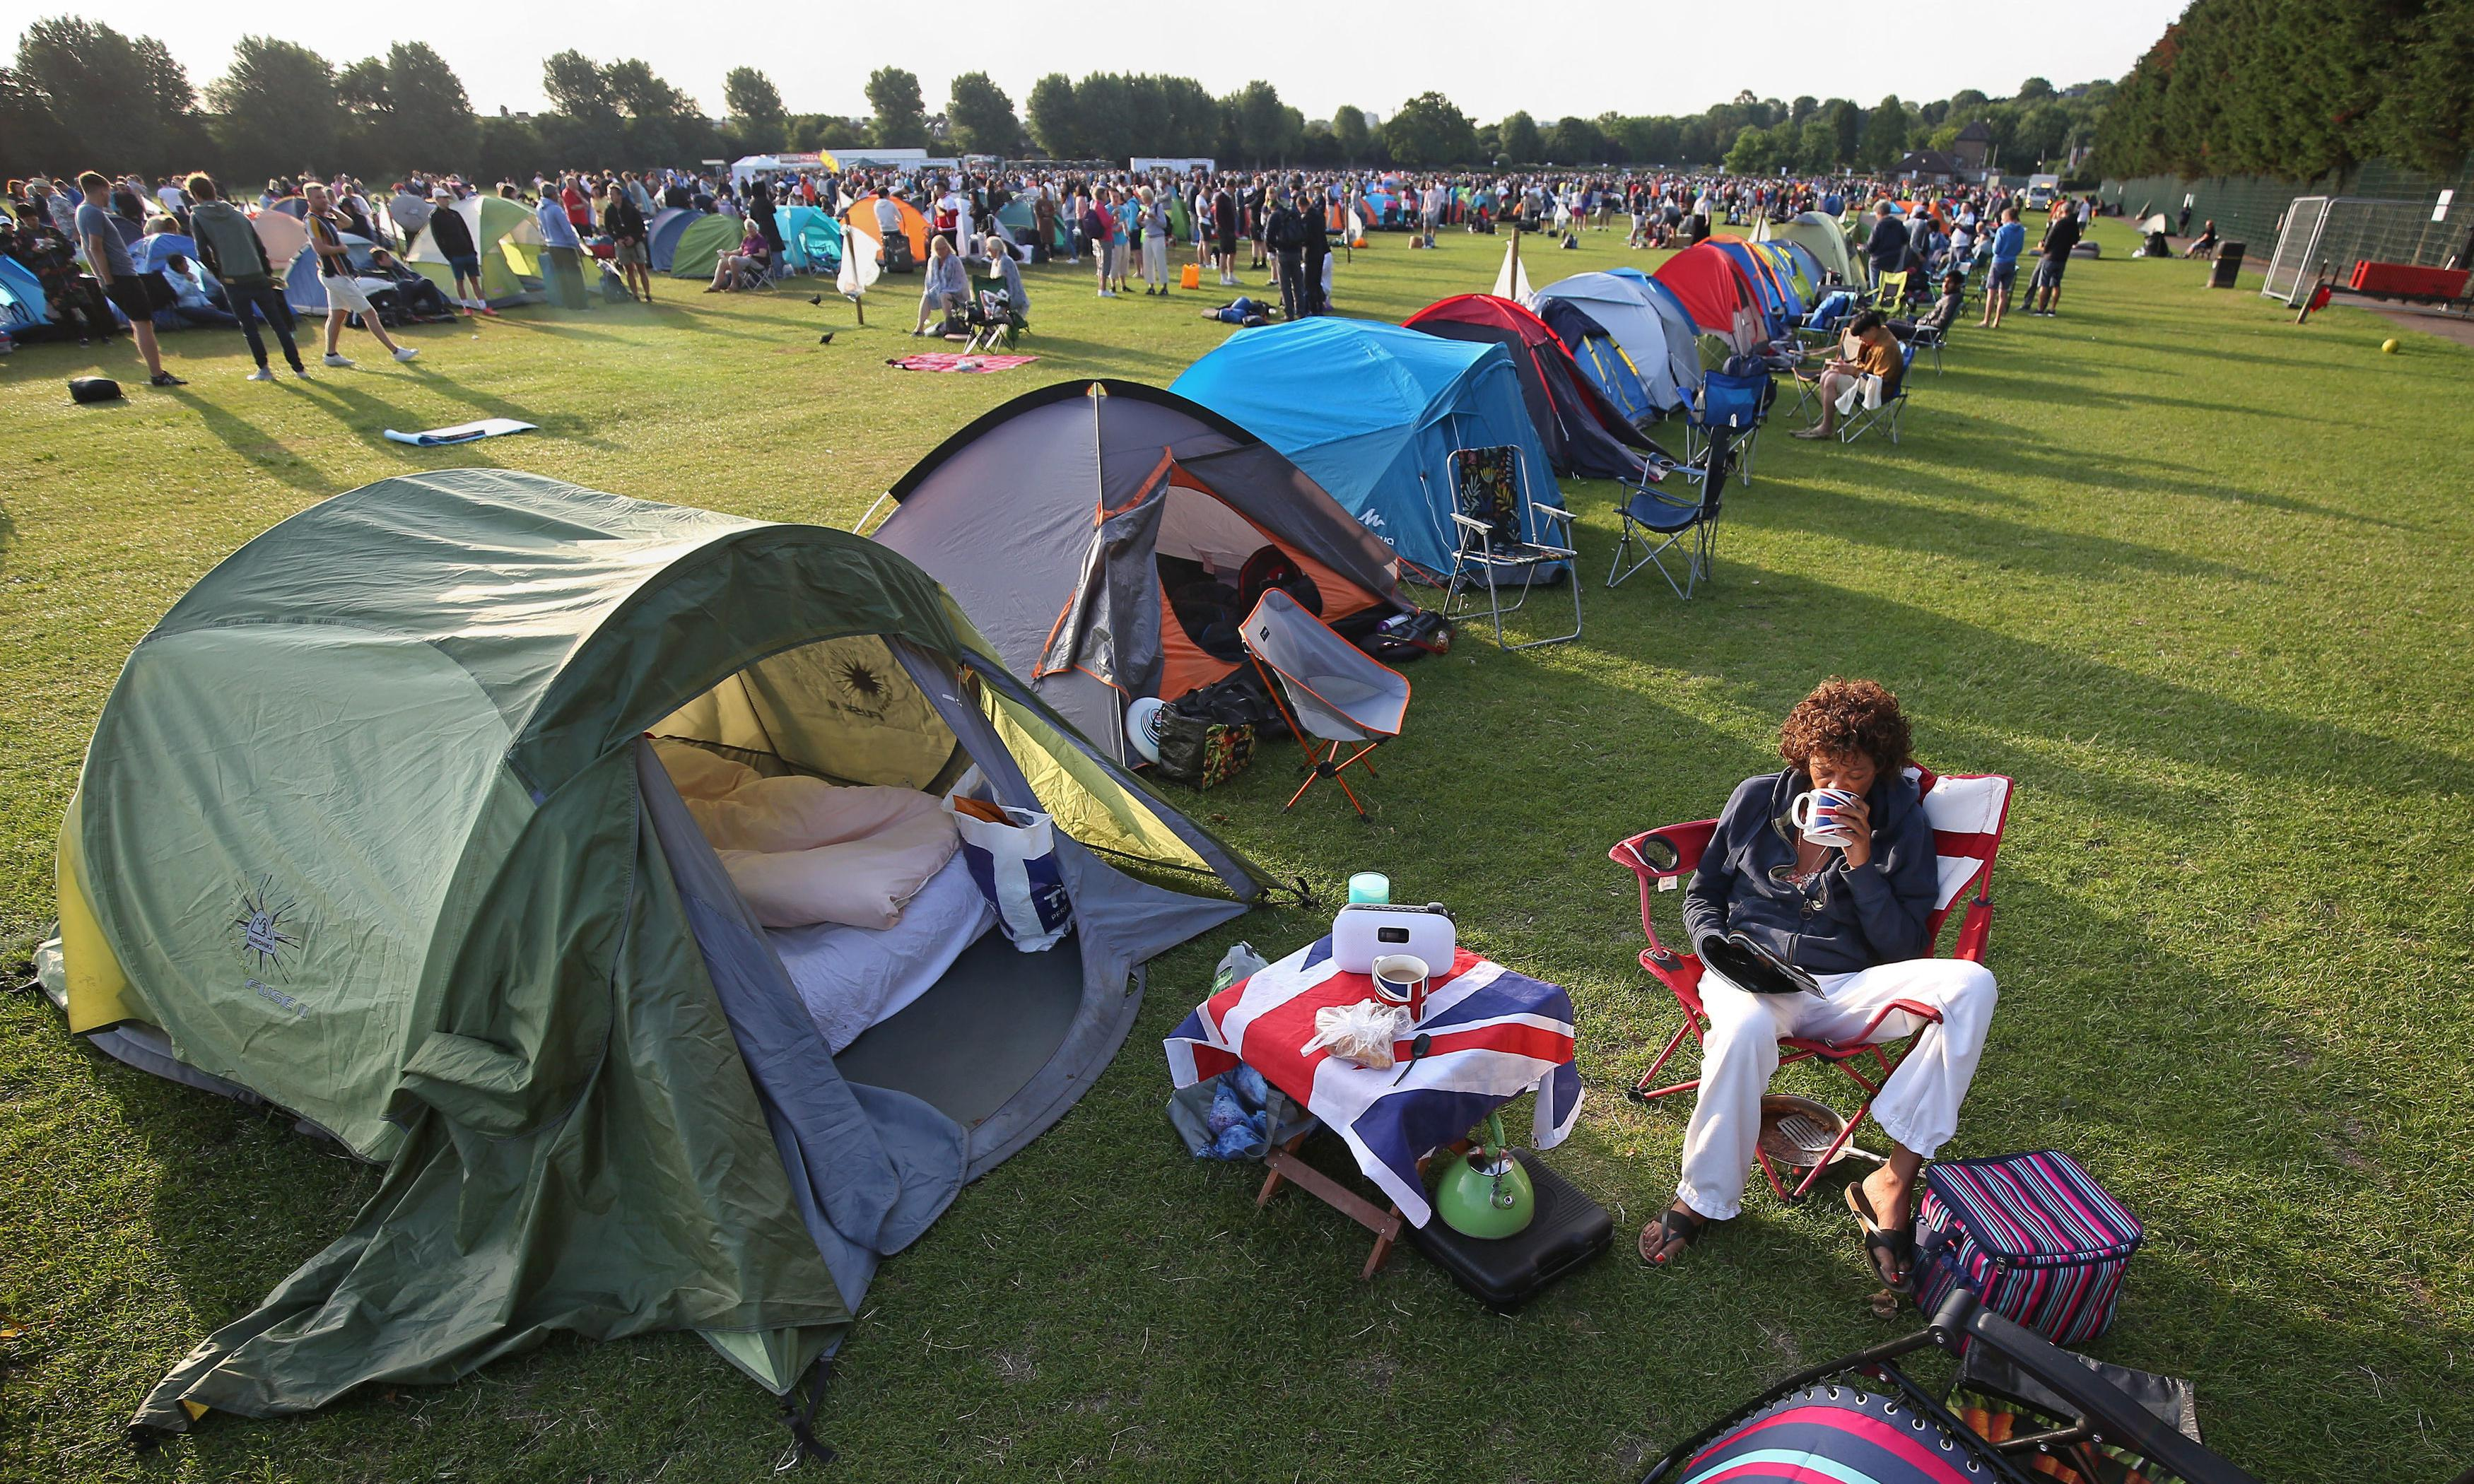 Is Wimbledon's queue really a 'great tradition'?